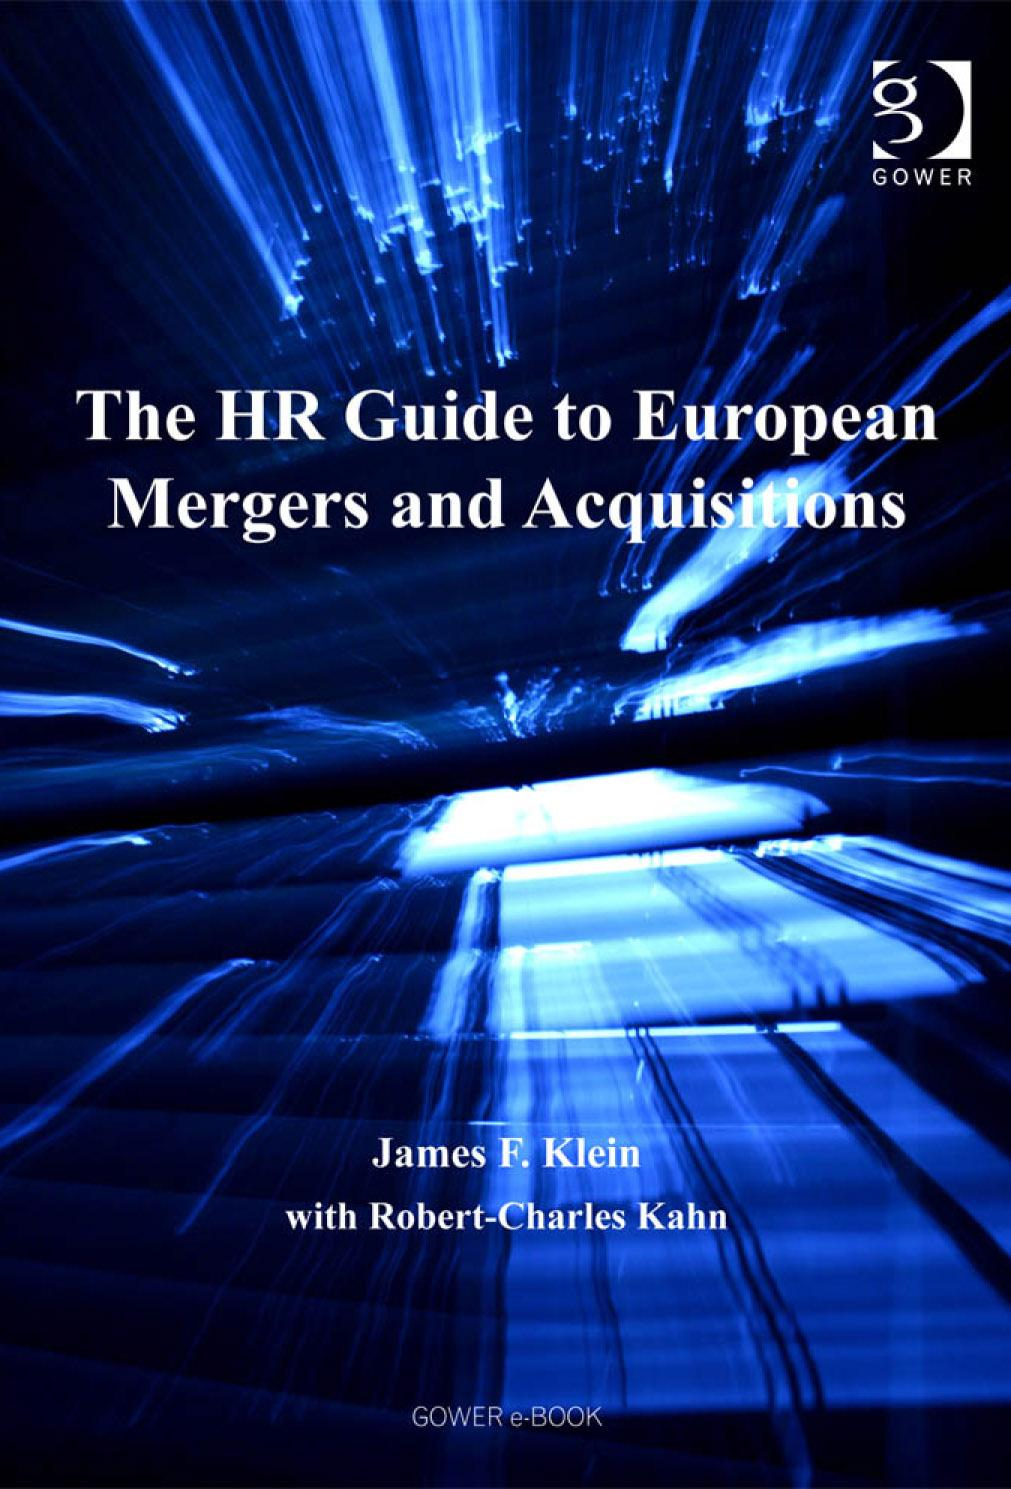 HR Guide to European Mergers and Acquisitions, The